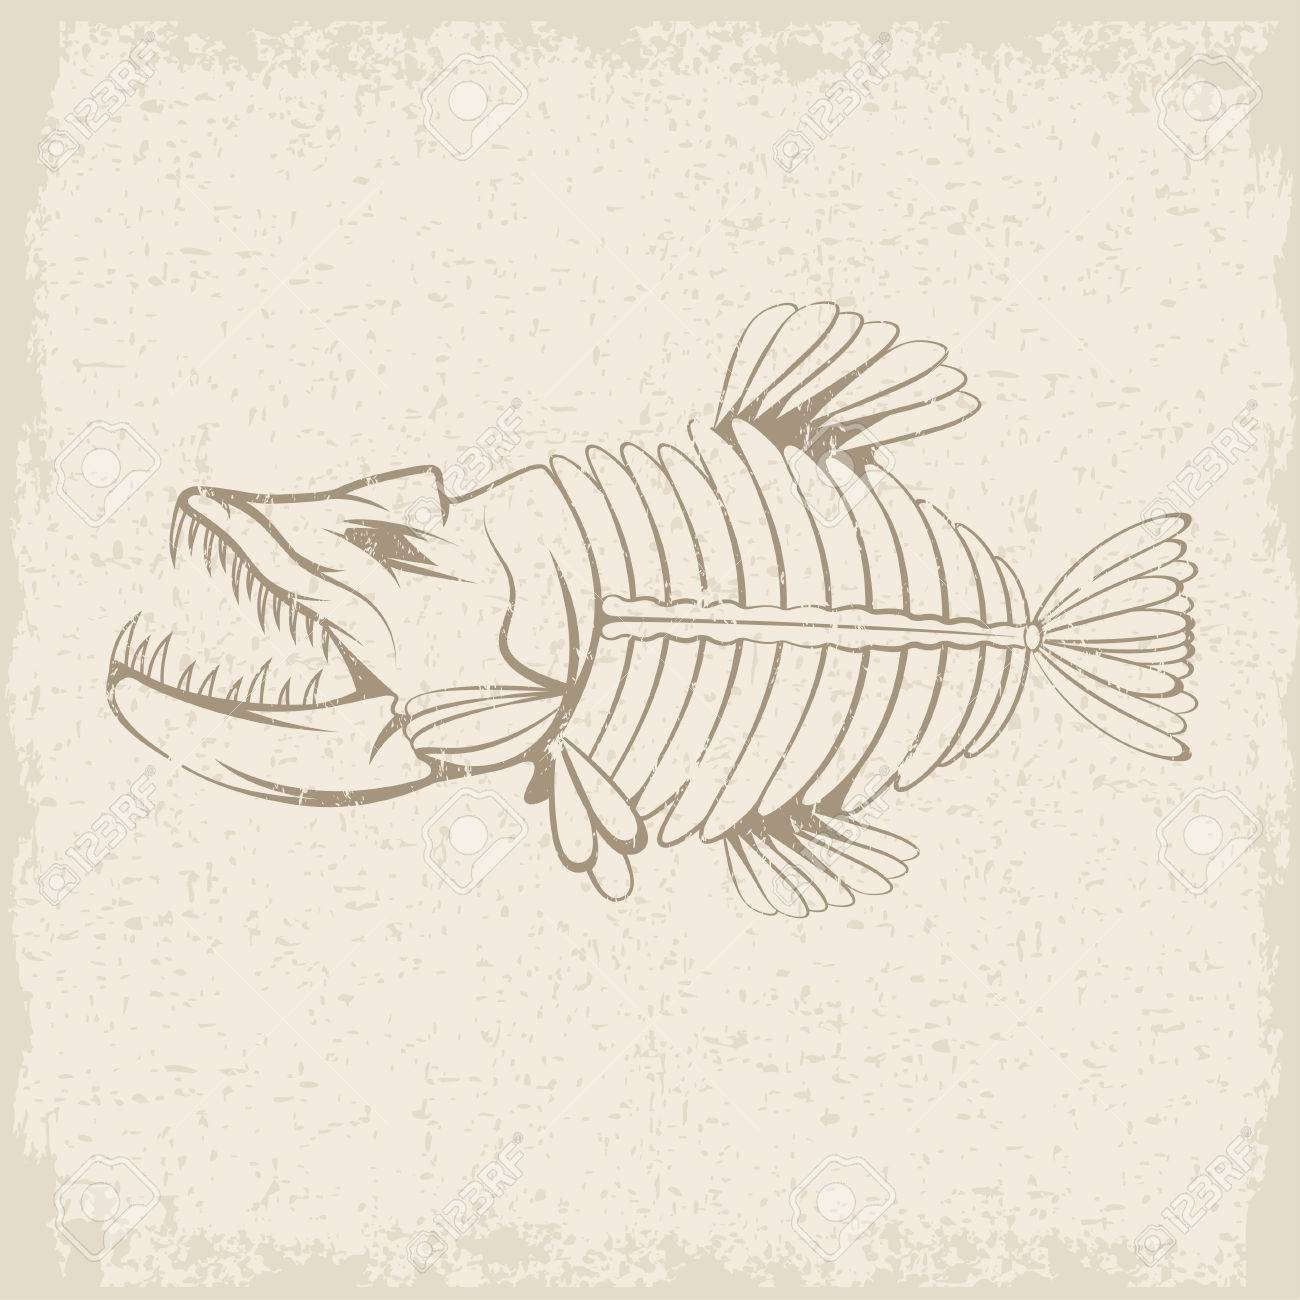 Grunge Vector Design Template Of Aggressive Tropical Fish Skeleton Stock